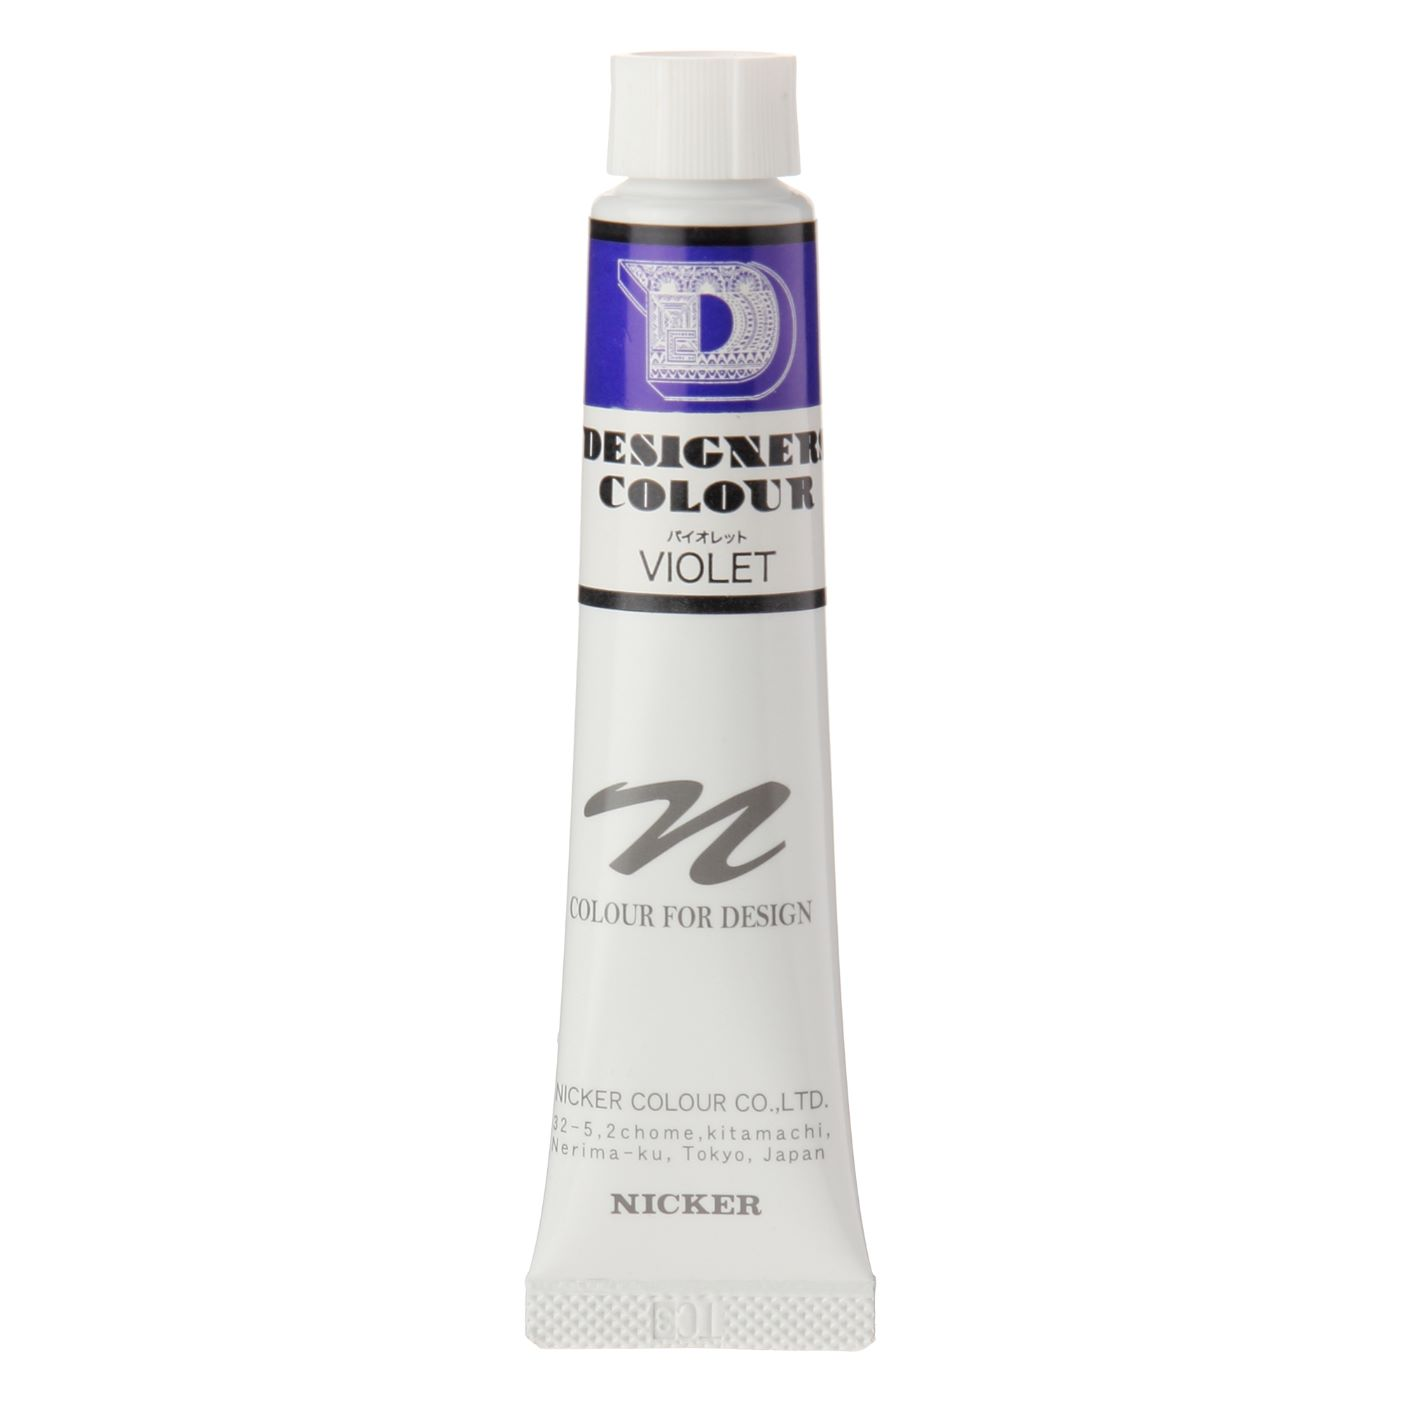 DESIGNERS COLOUR 20ml 532 VIOLET